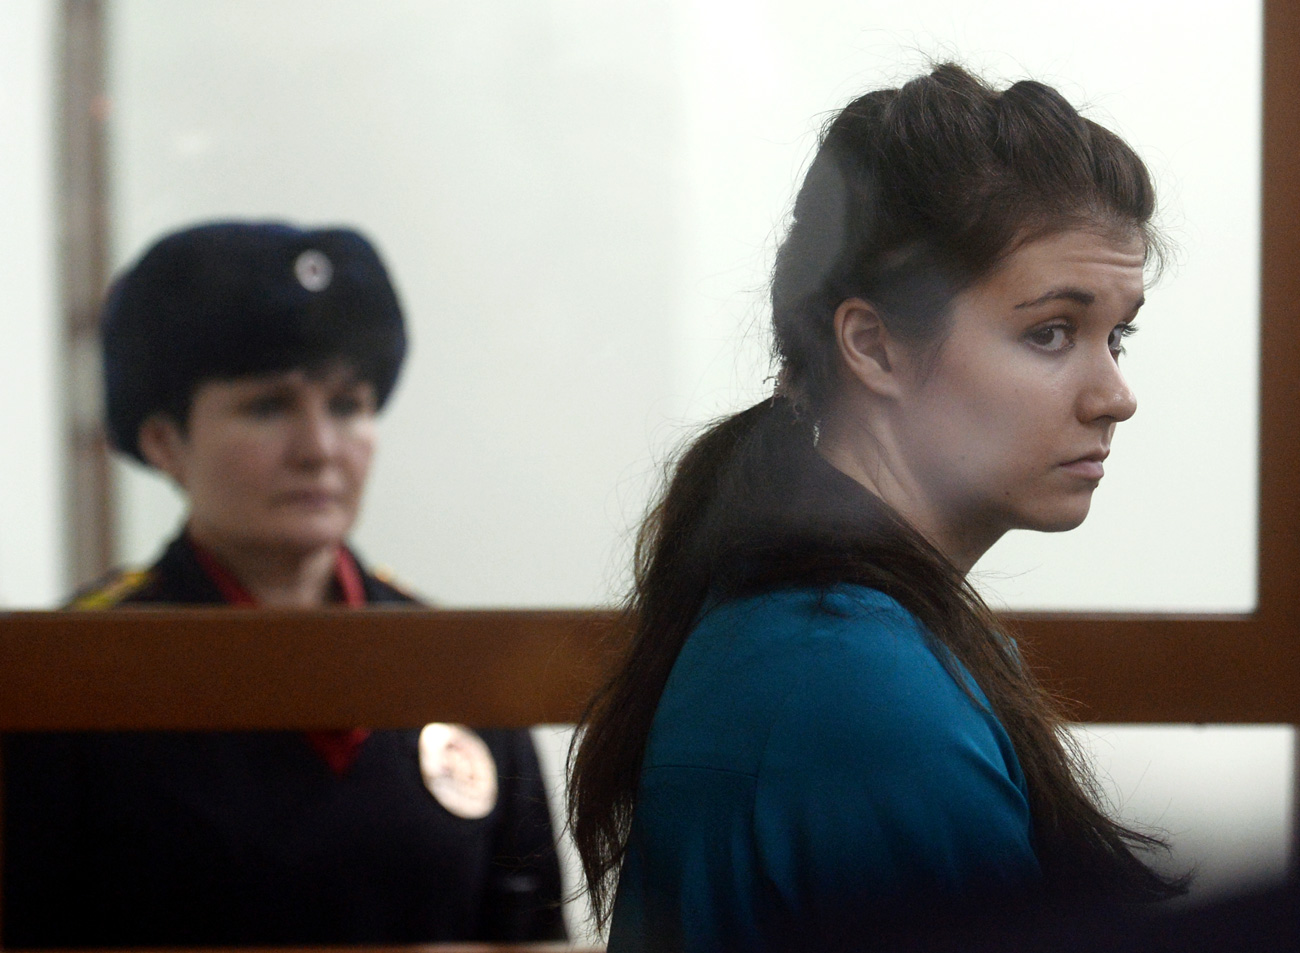 """The court's decision is Karaulova is guilty, she is sentenced to 4 years and 6 months in a penal colony."""